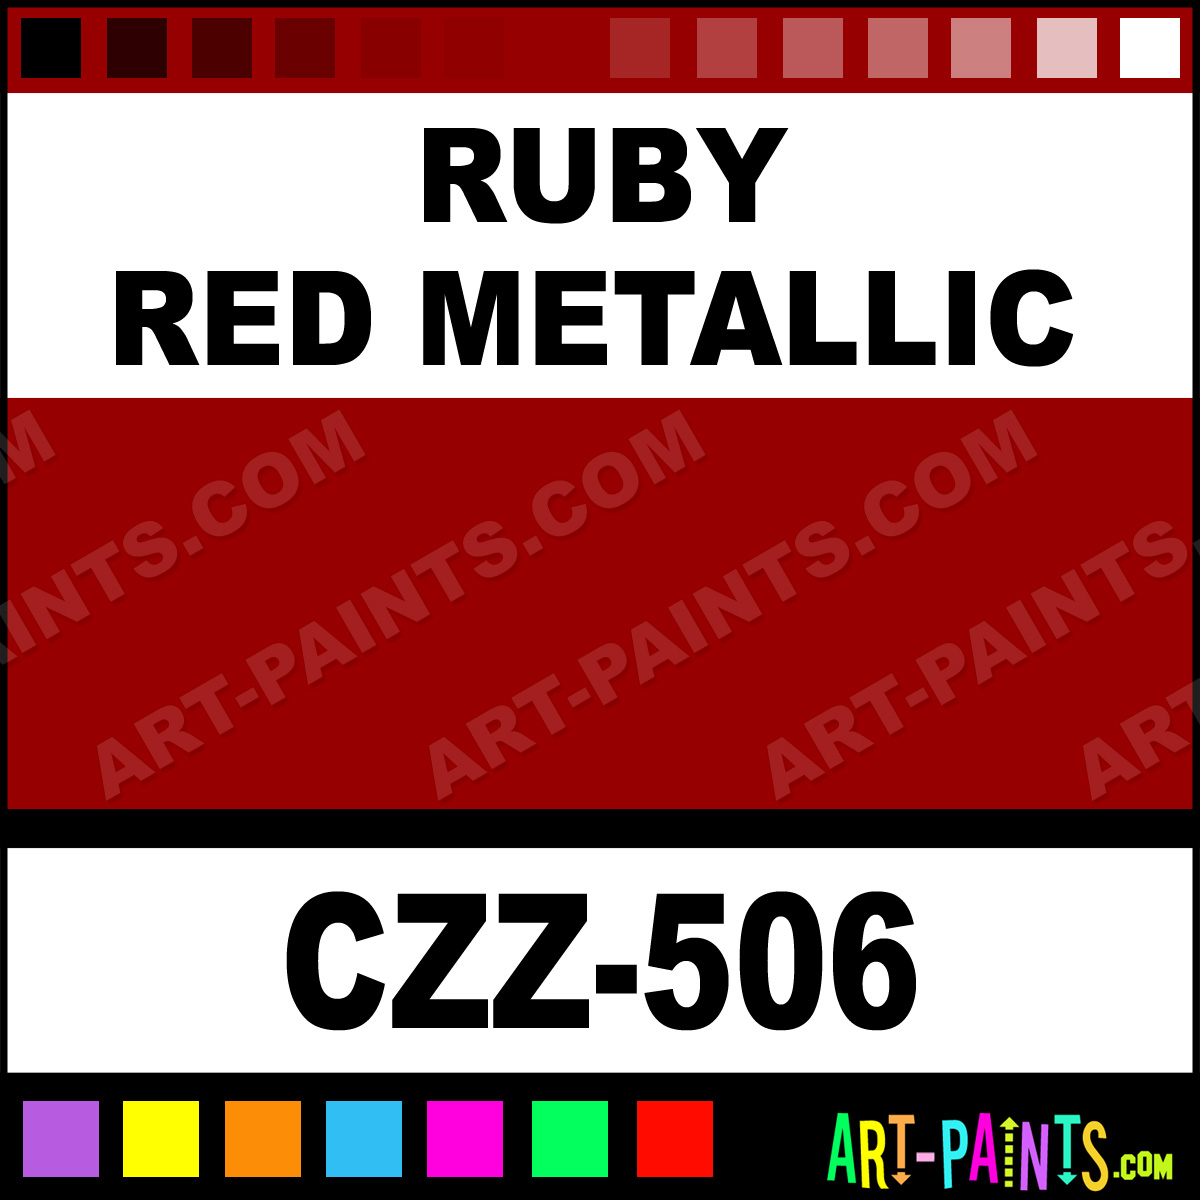 Ruby Red Metallic Cand E Z Airbrush Spray Paints Czz 506 Ruby Red Metallic Paint Ruby Red